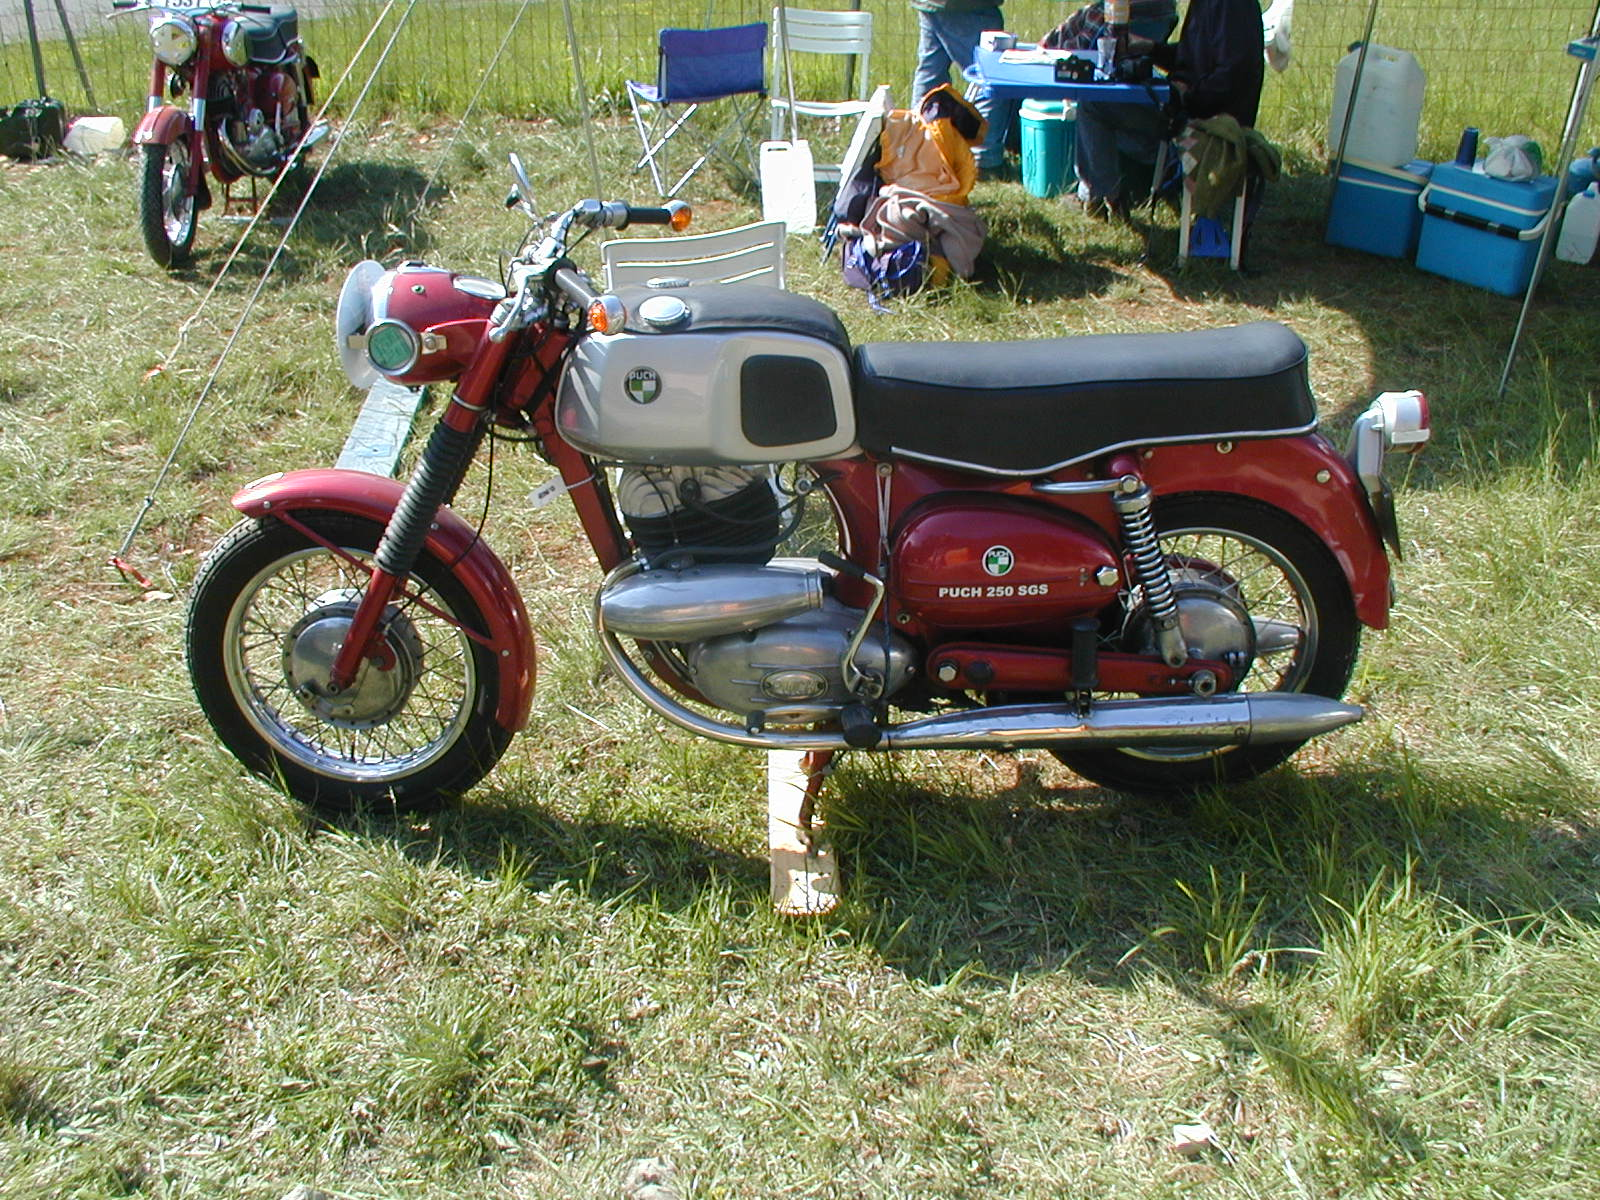 Daimler Puch Motorcycle Puch Motorcycle Marketed as